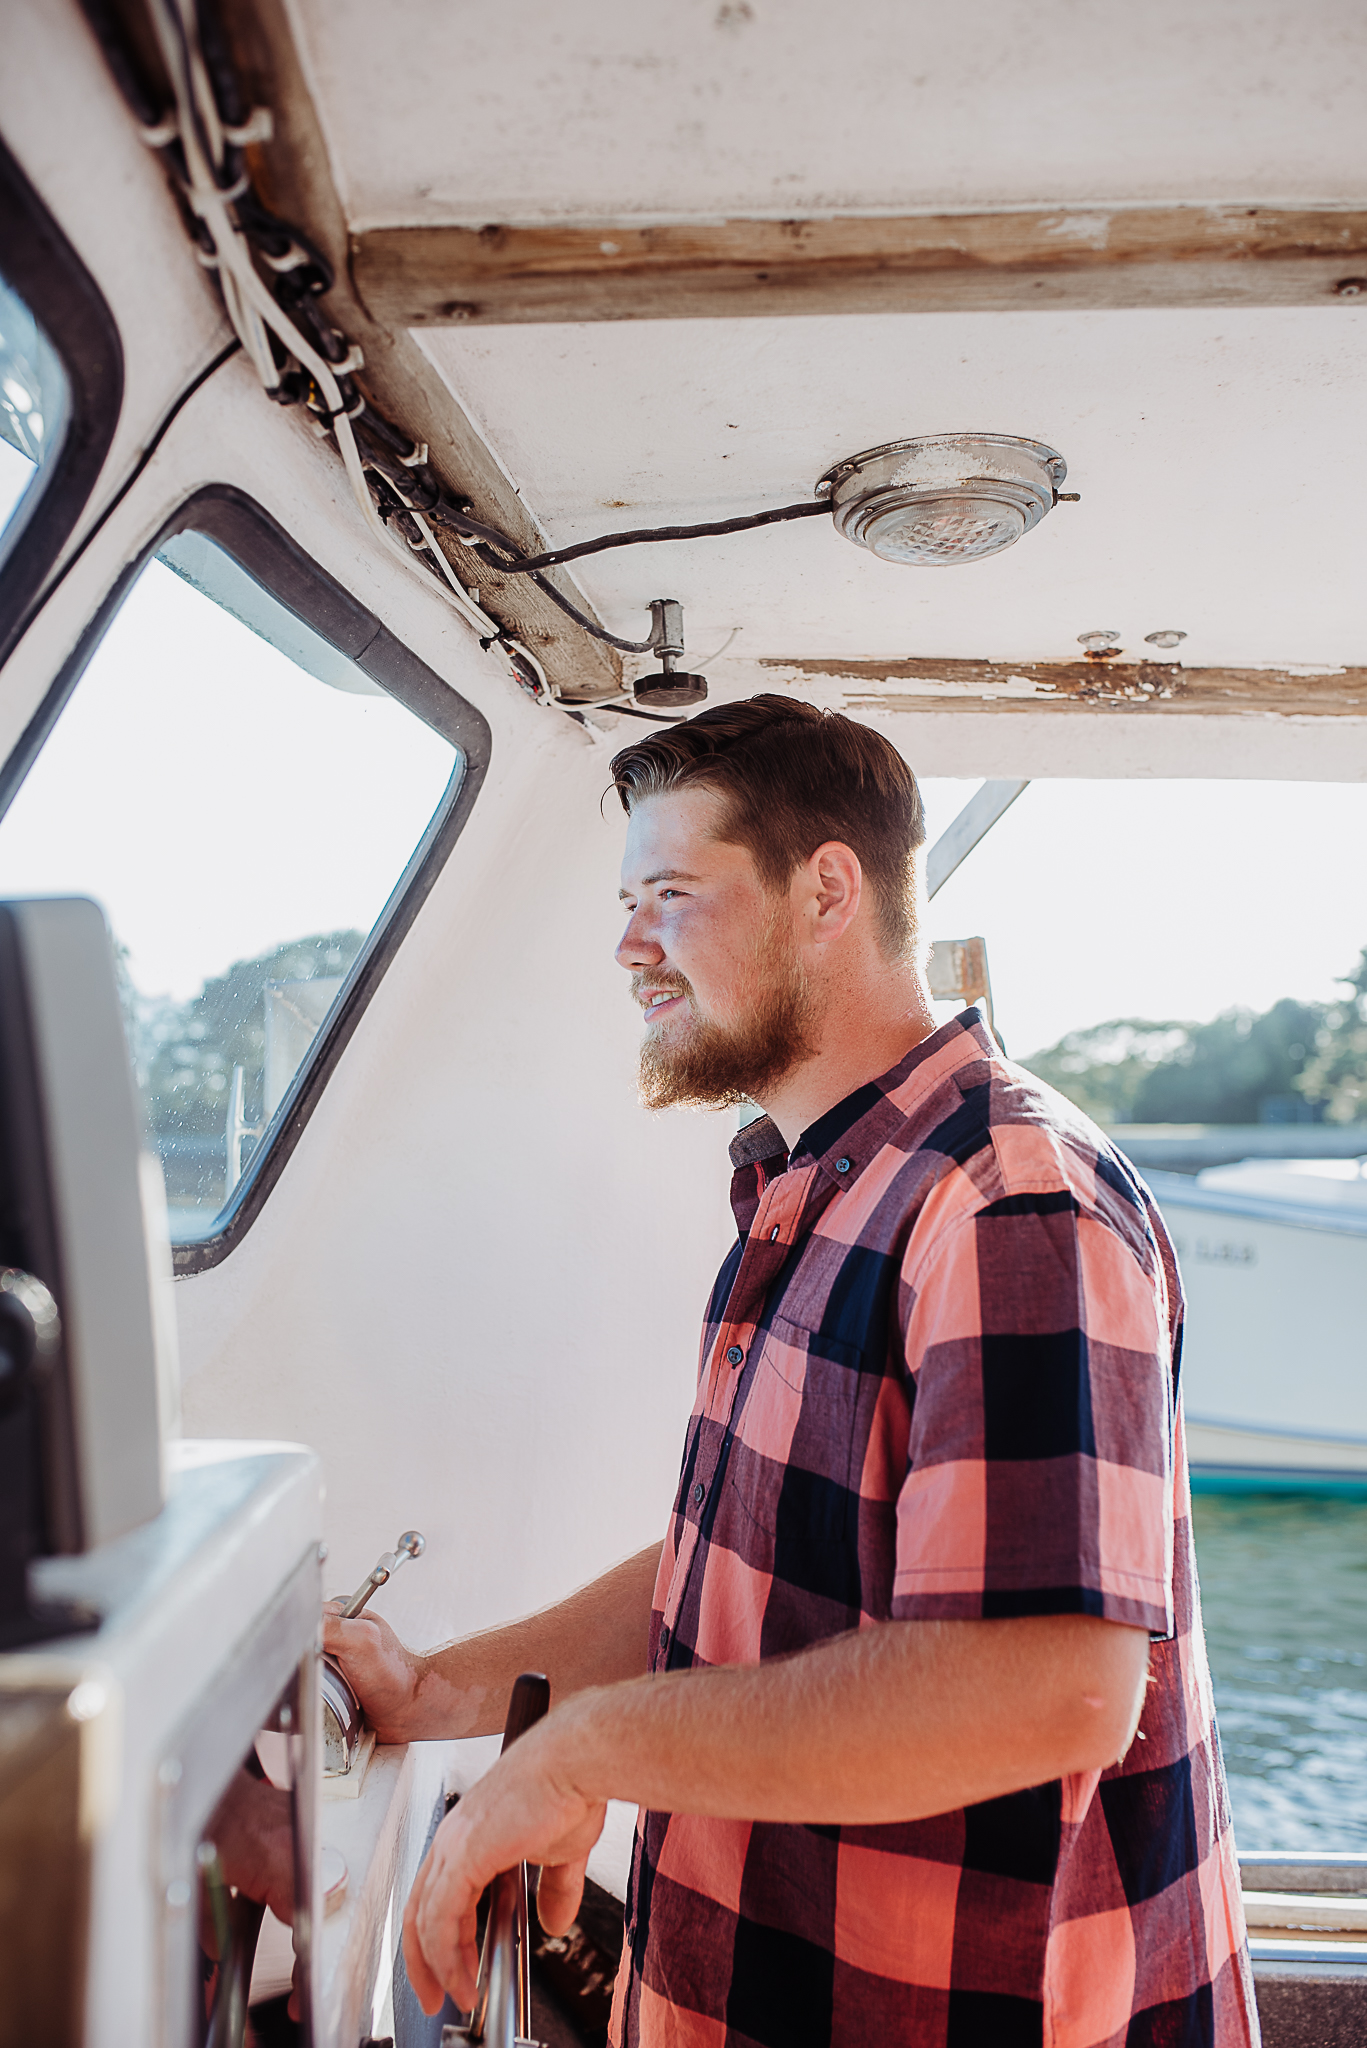 Thomas at the helm of CENTERFOLD, docked in Harpswell, Maine